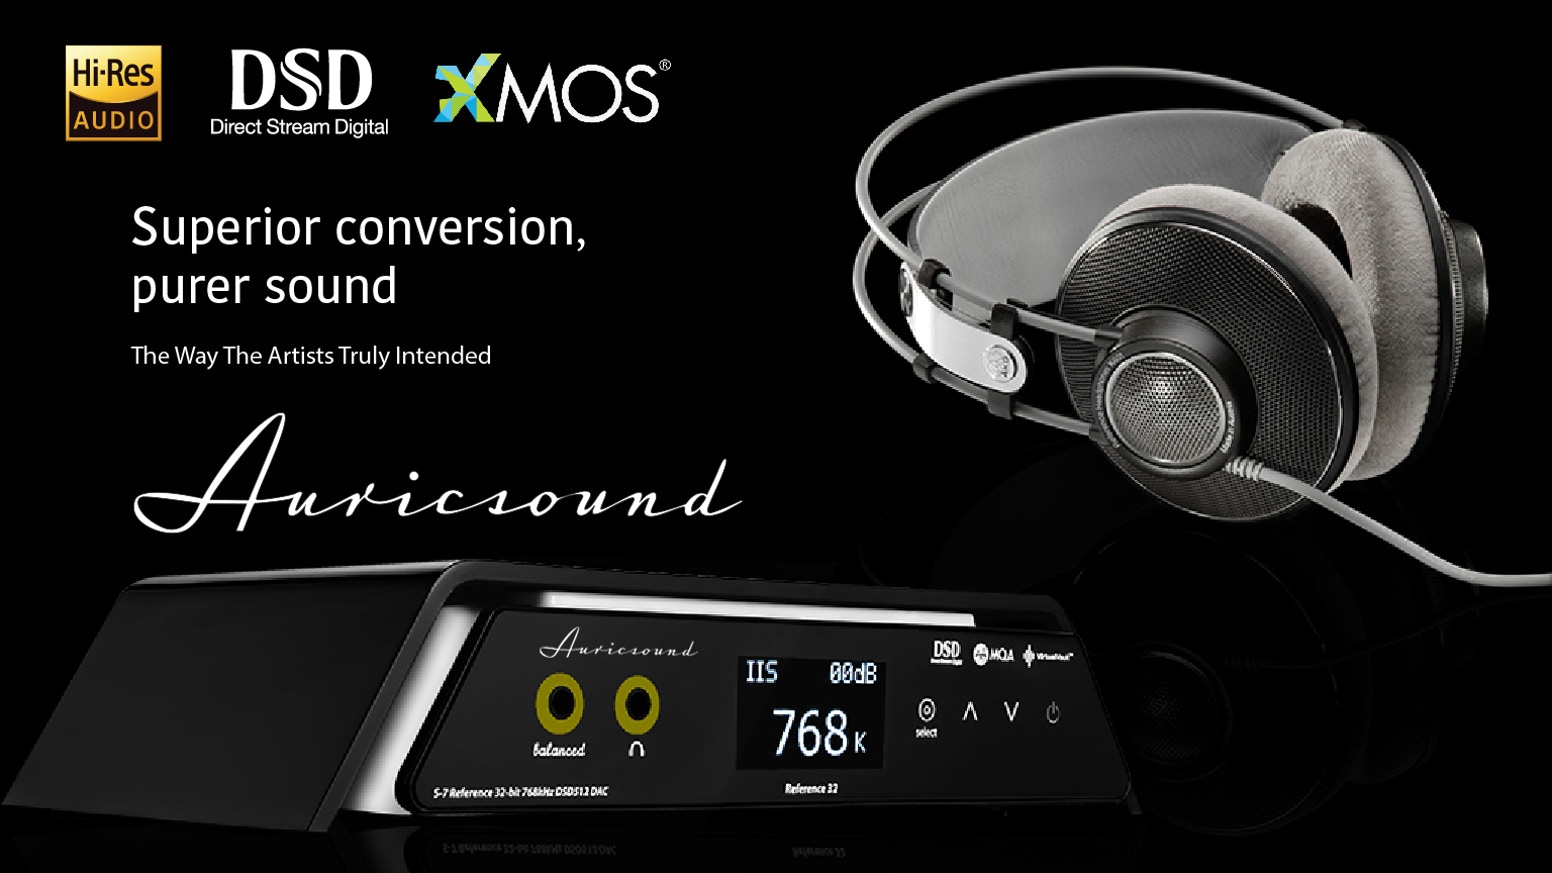 The AuricSound S7 is the world's smallest and lightest Ultra Hi-Res audio Twin DACs prepare to immersed in a world of vivid rich sound